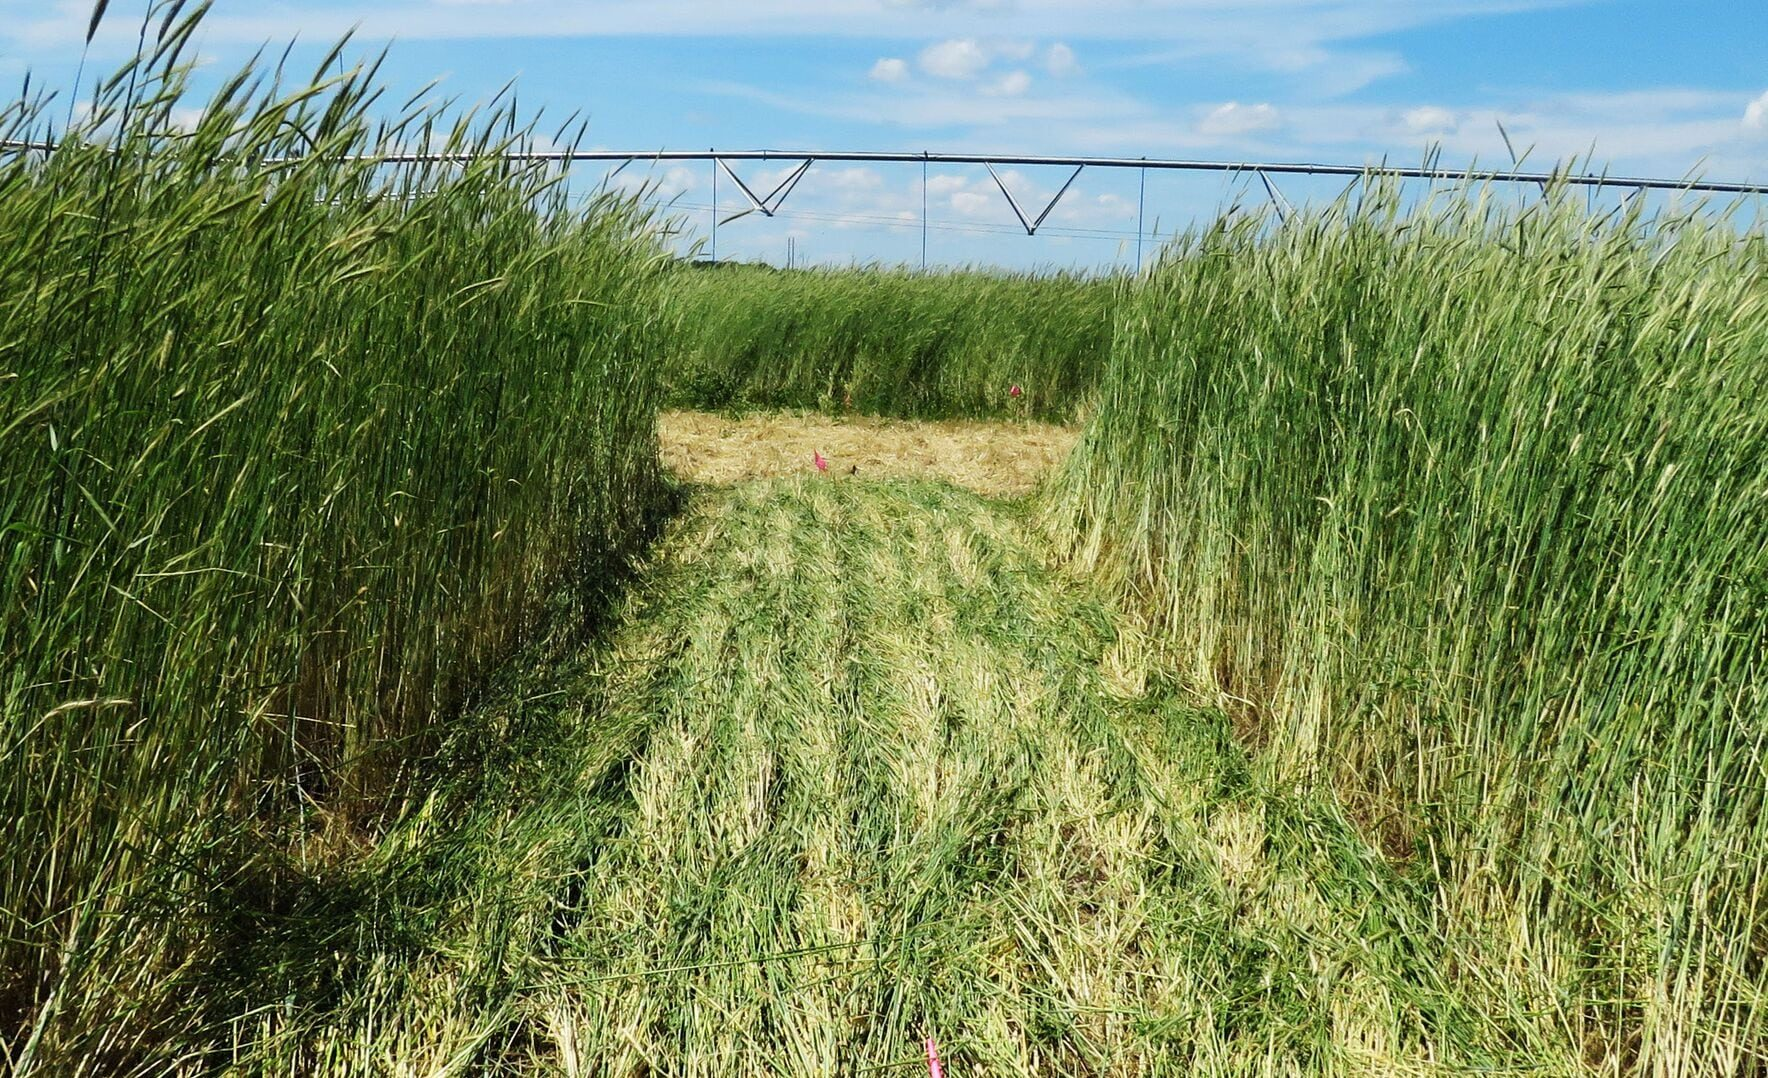 Rye that has been rolled down. Rye is a cereal cover crop.